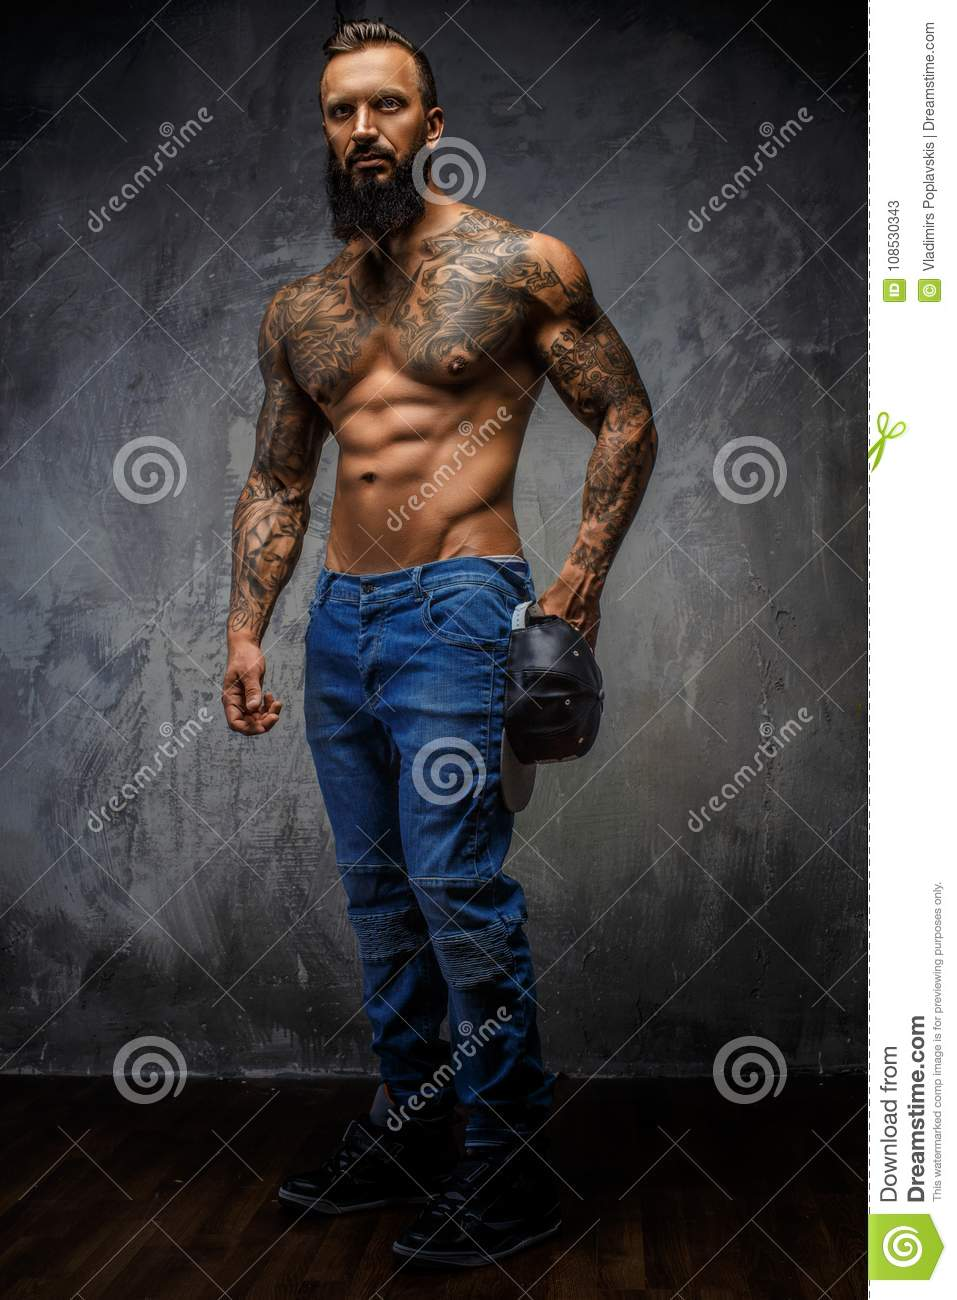 Removed (has Men with beards tattoos and muscles agree, very